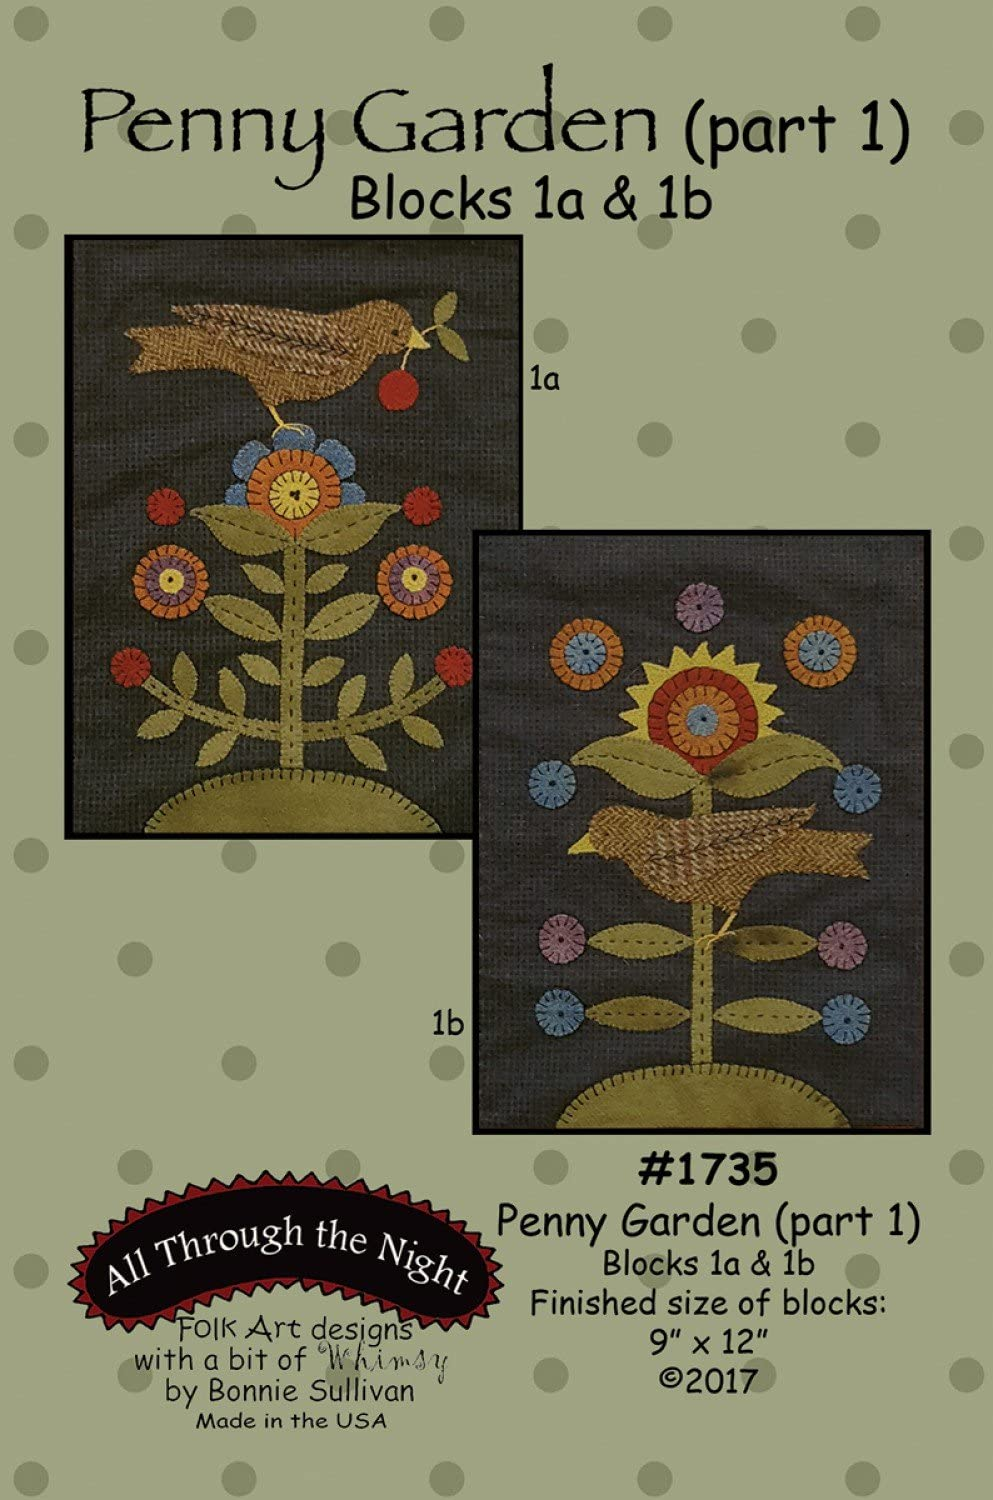 Penny Garden applique quilt pattern by Bonnie Sullivan from All Through the Night #1735 part 1